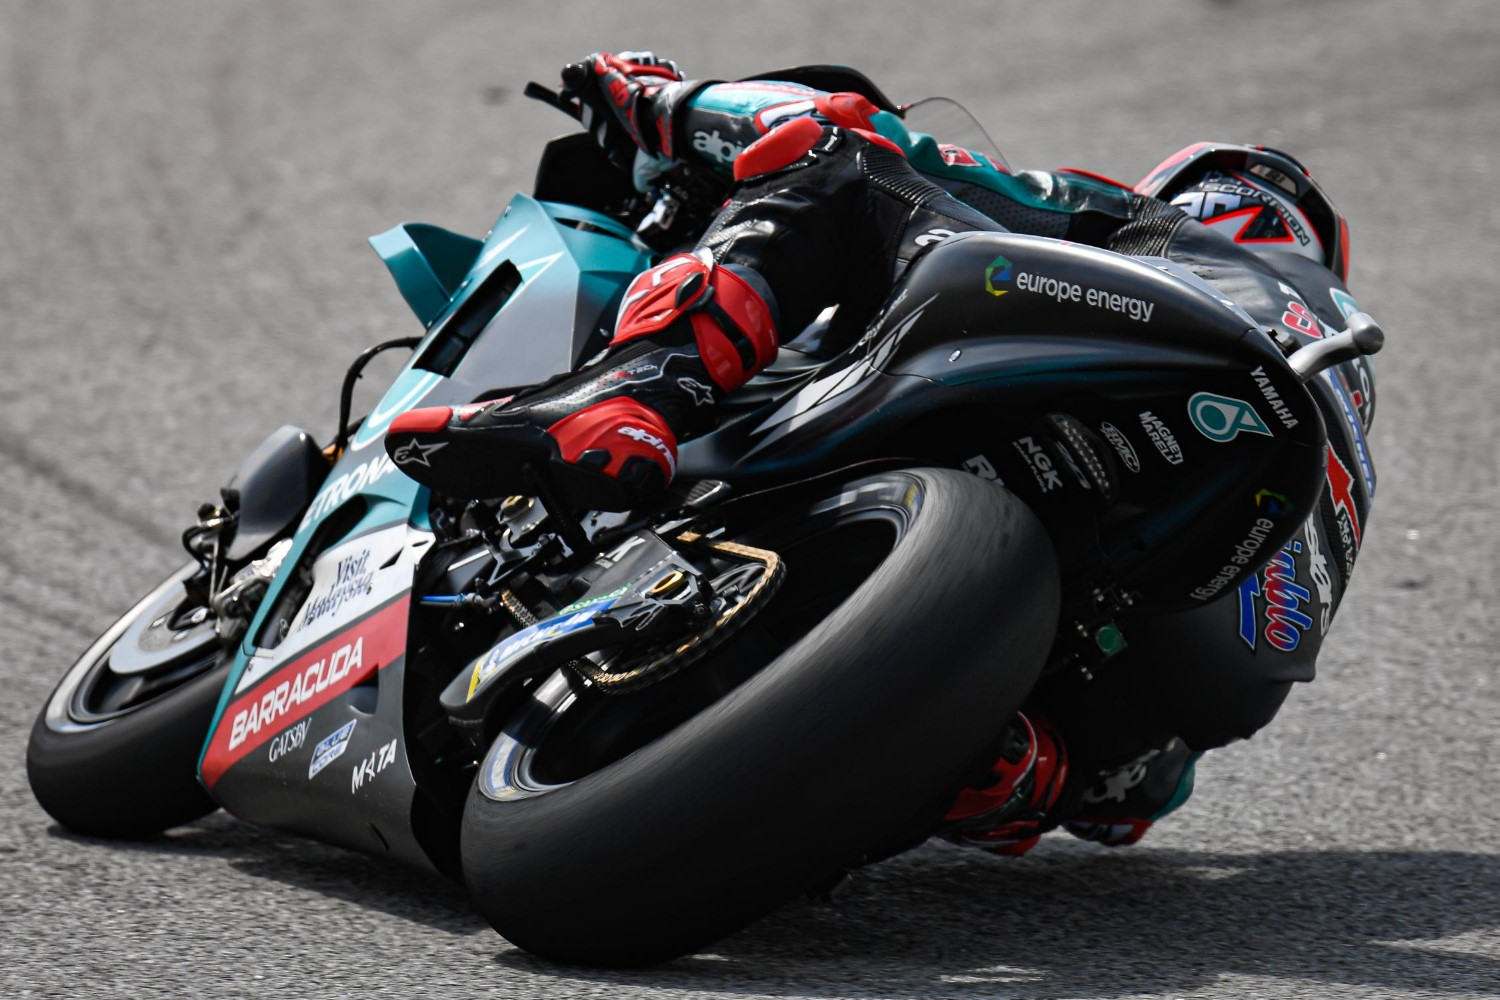 Fabio Quartararo shows the competition how it is done